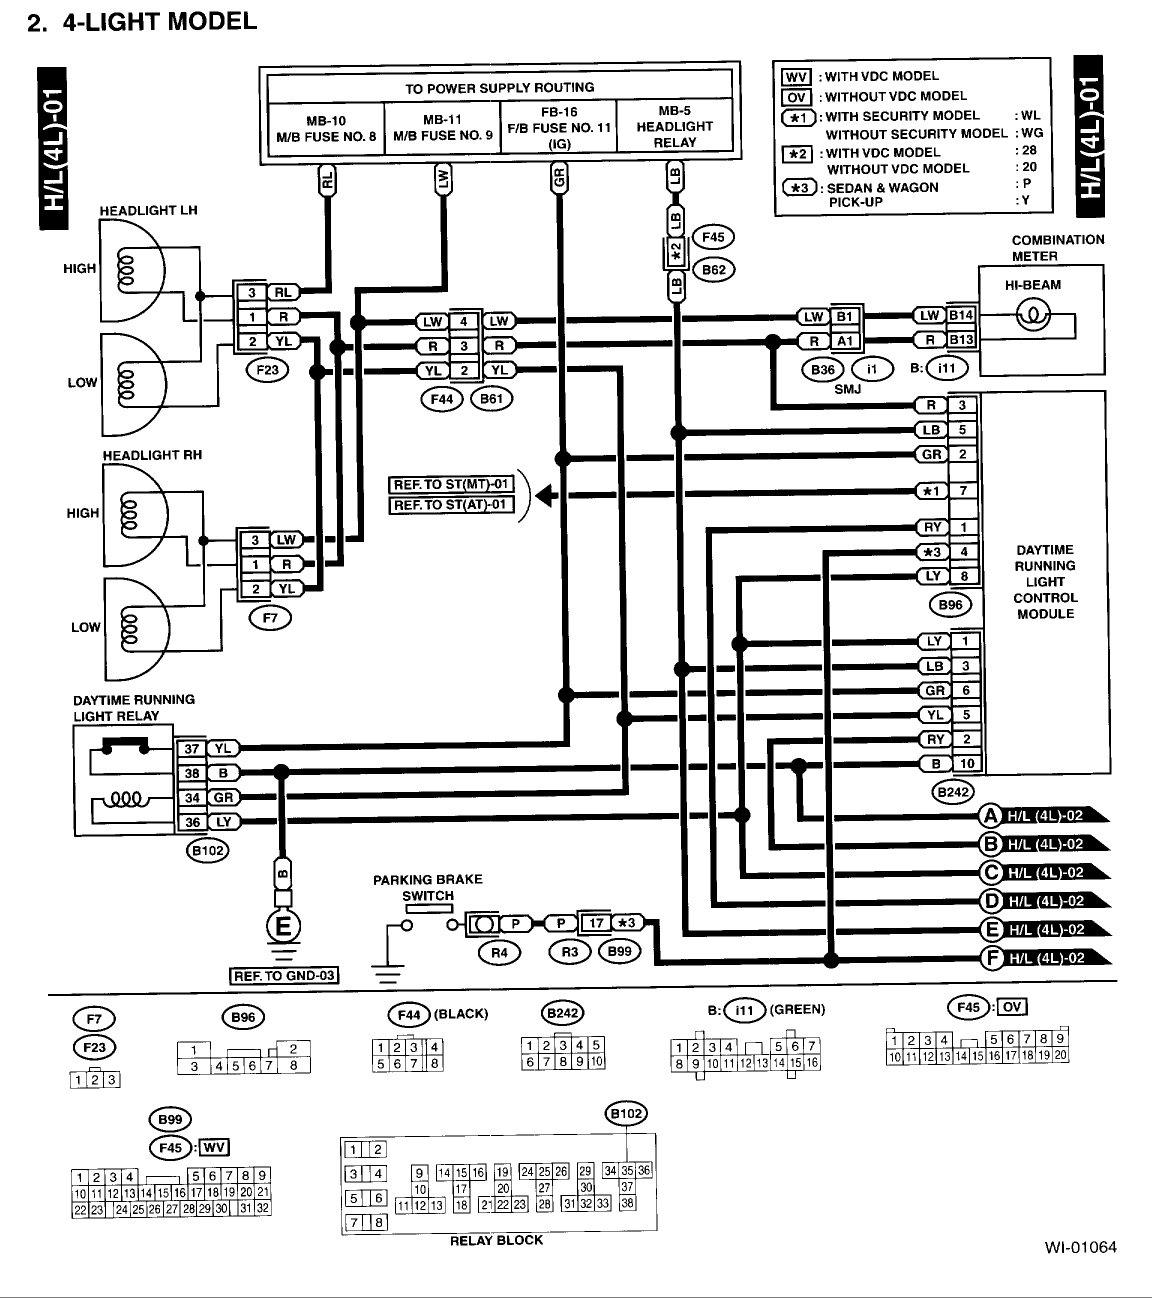 2015 Sti Wiring Diagram - Wiring Diagram Go Office Speaker Wiring Schematic on